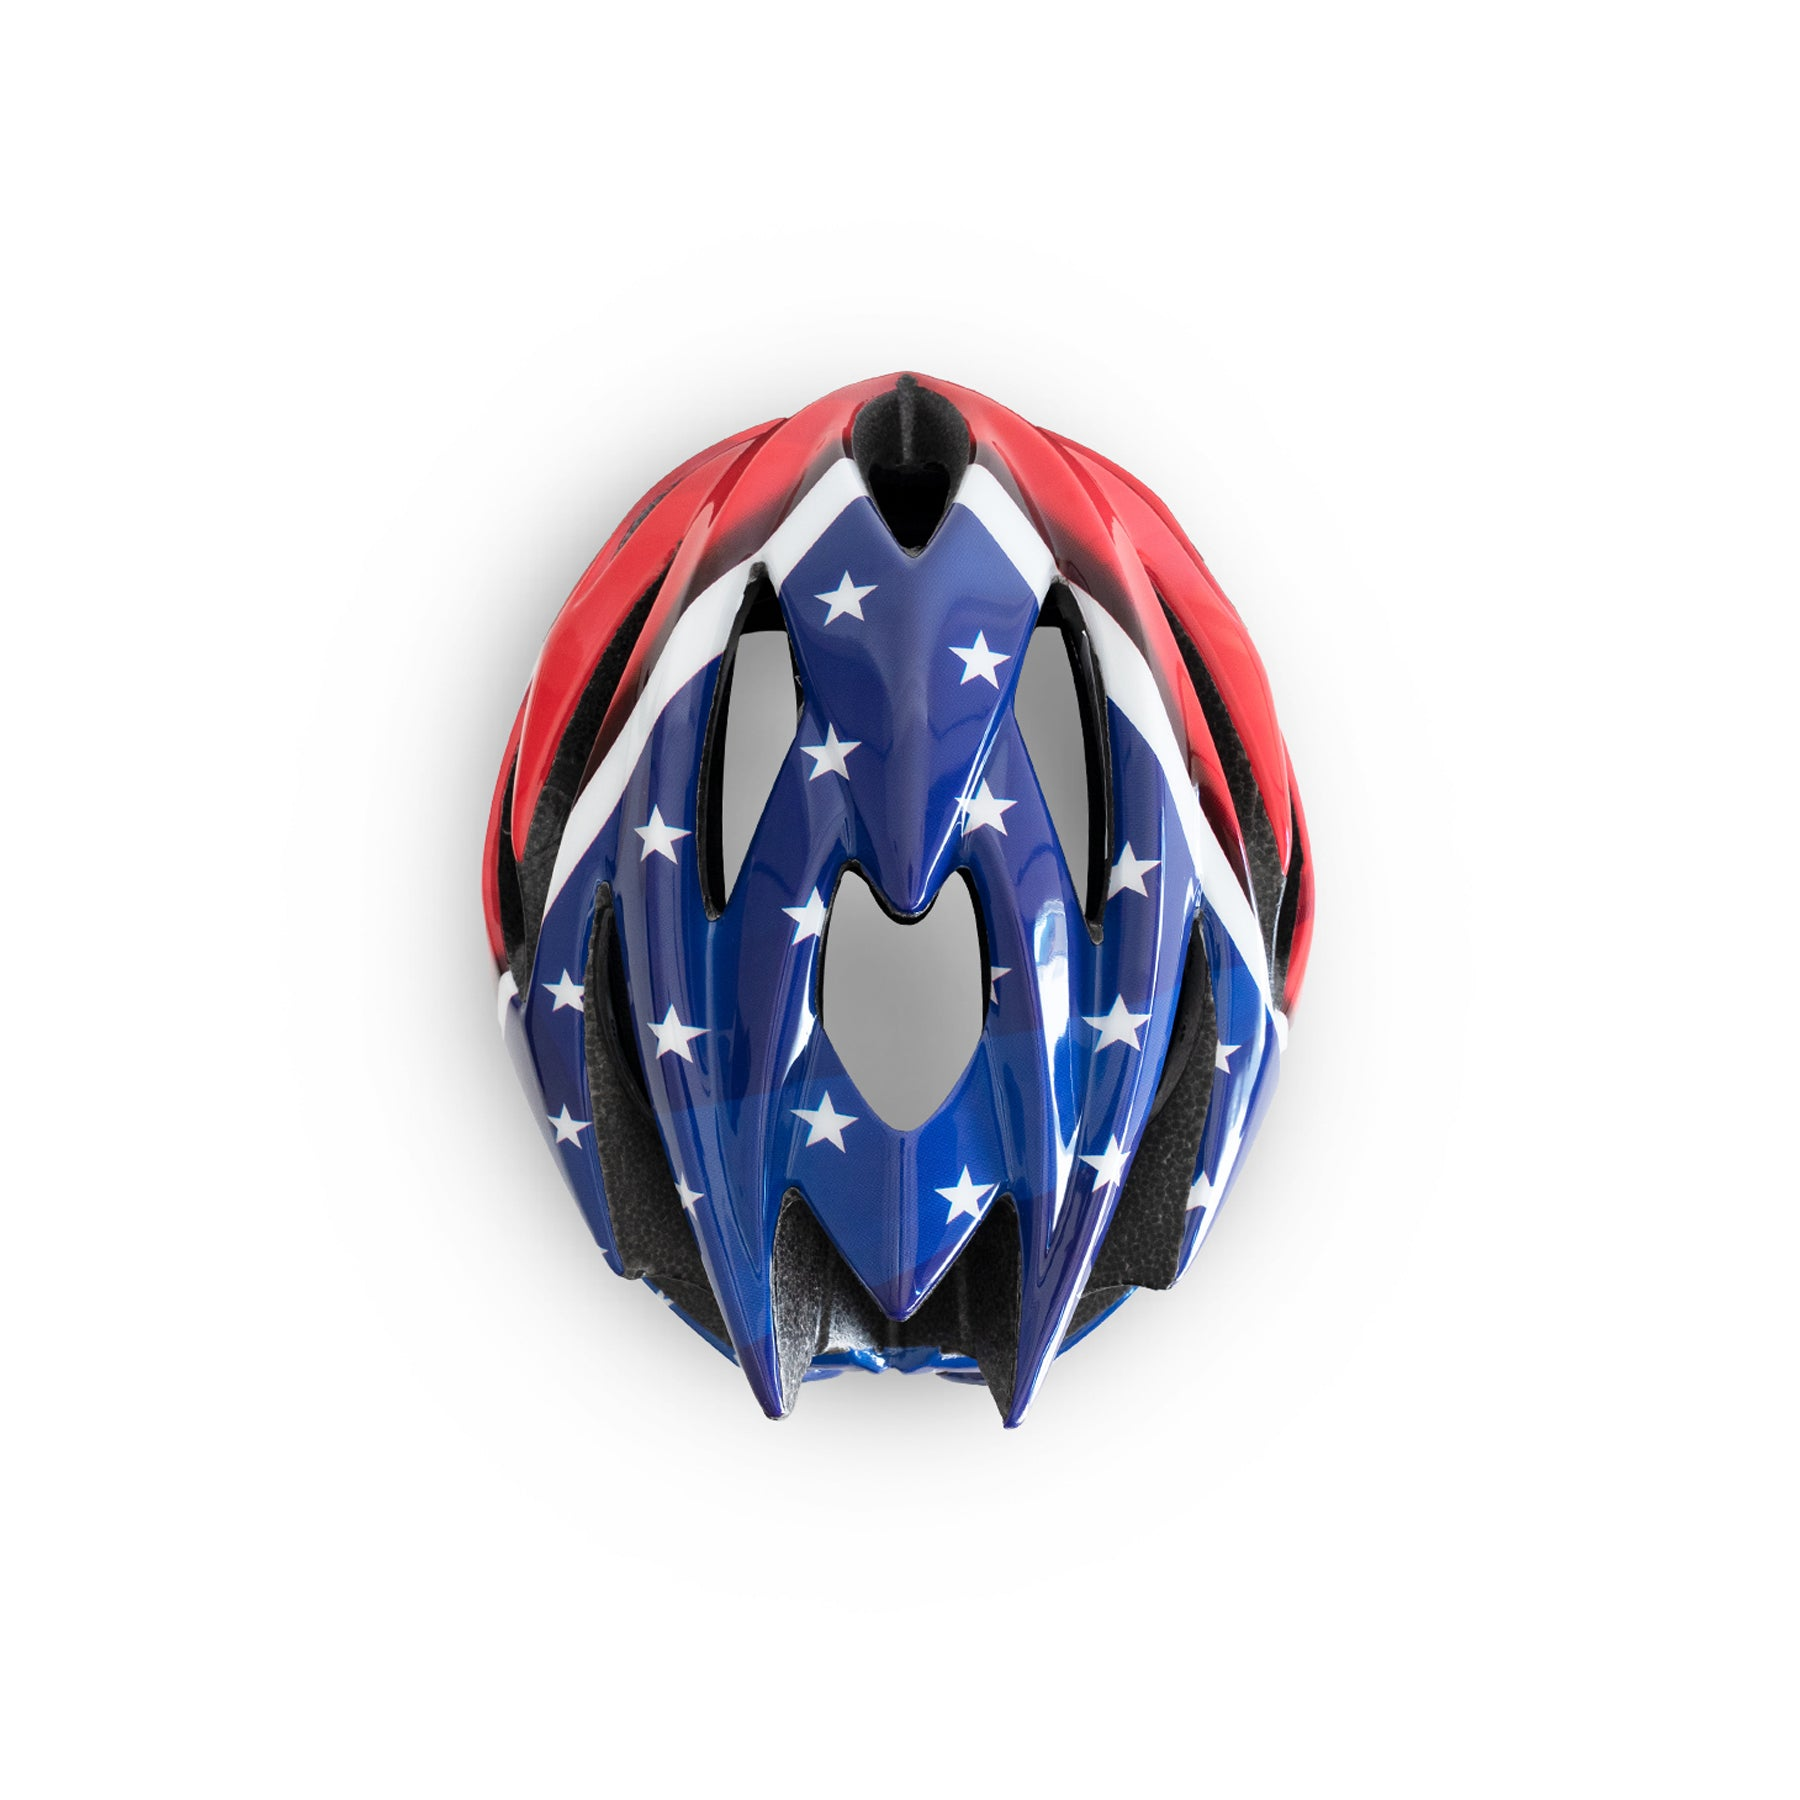 Rudy Project - Rush - color: USA Triathlon Edition - photo angle: Top Variant Hover Image